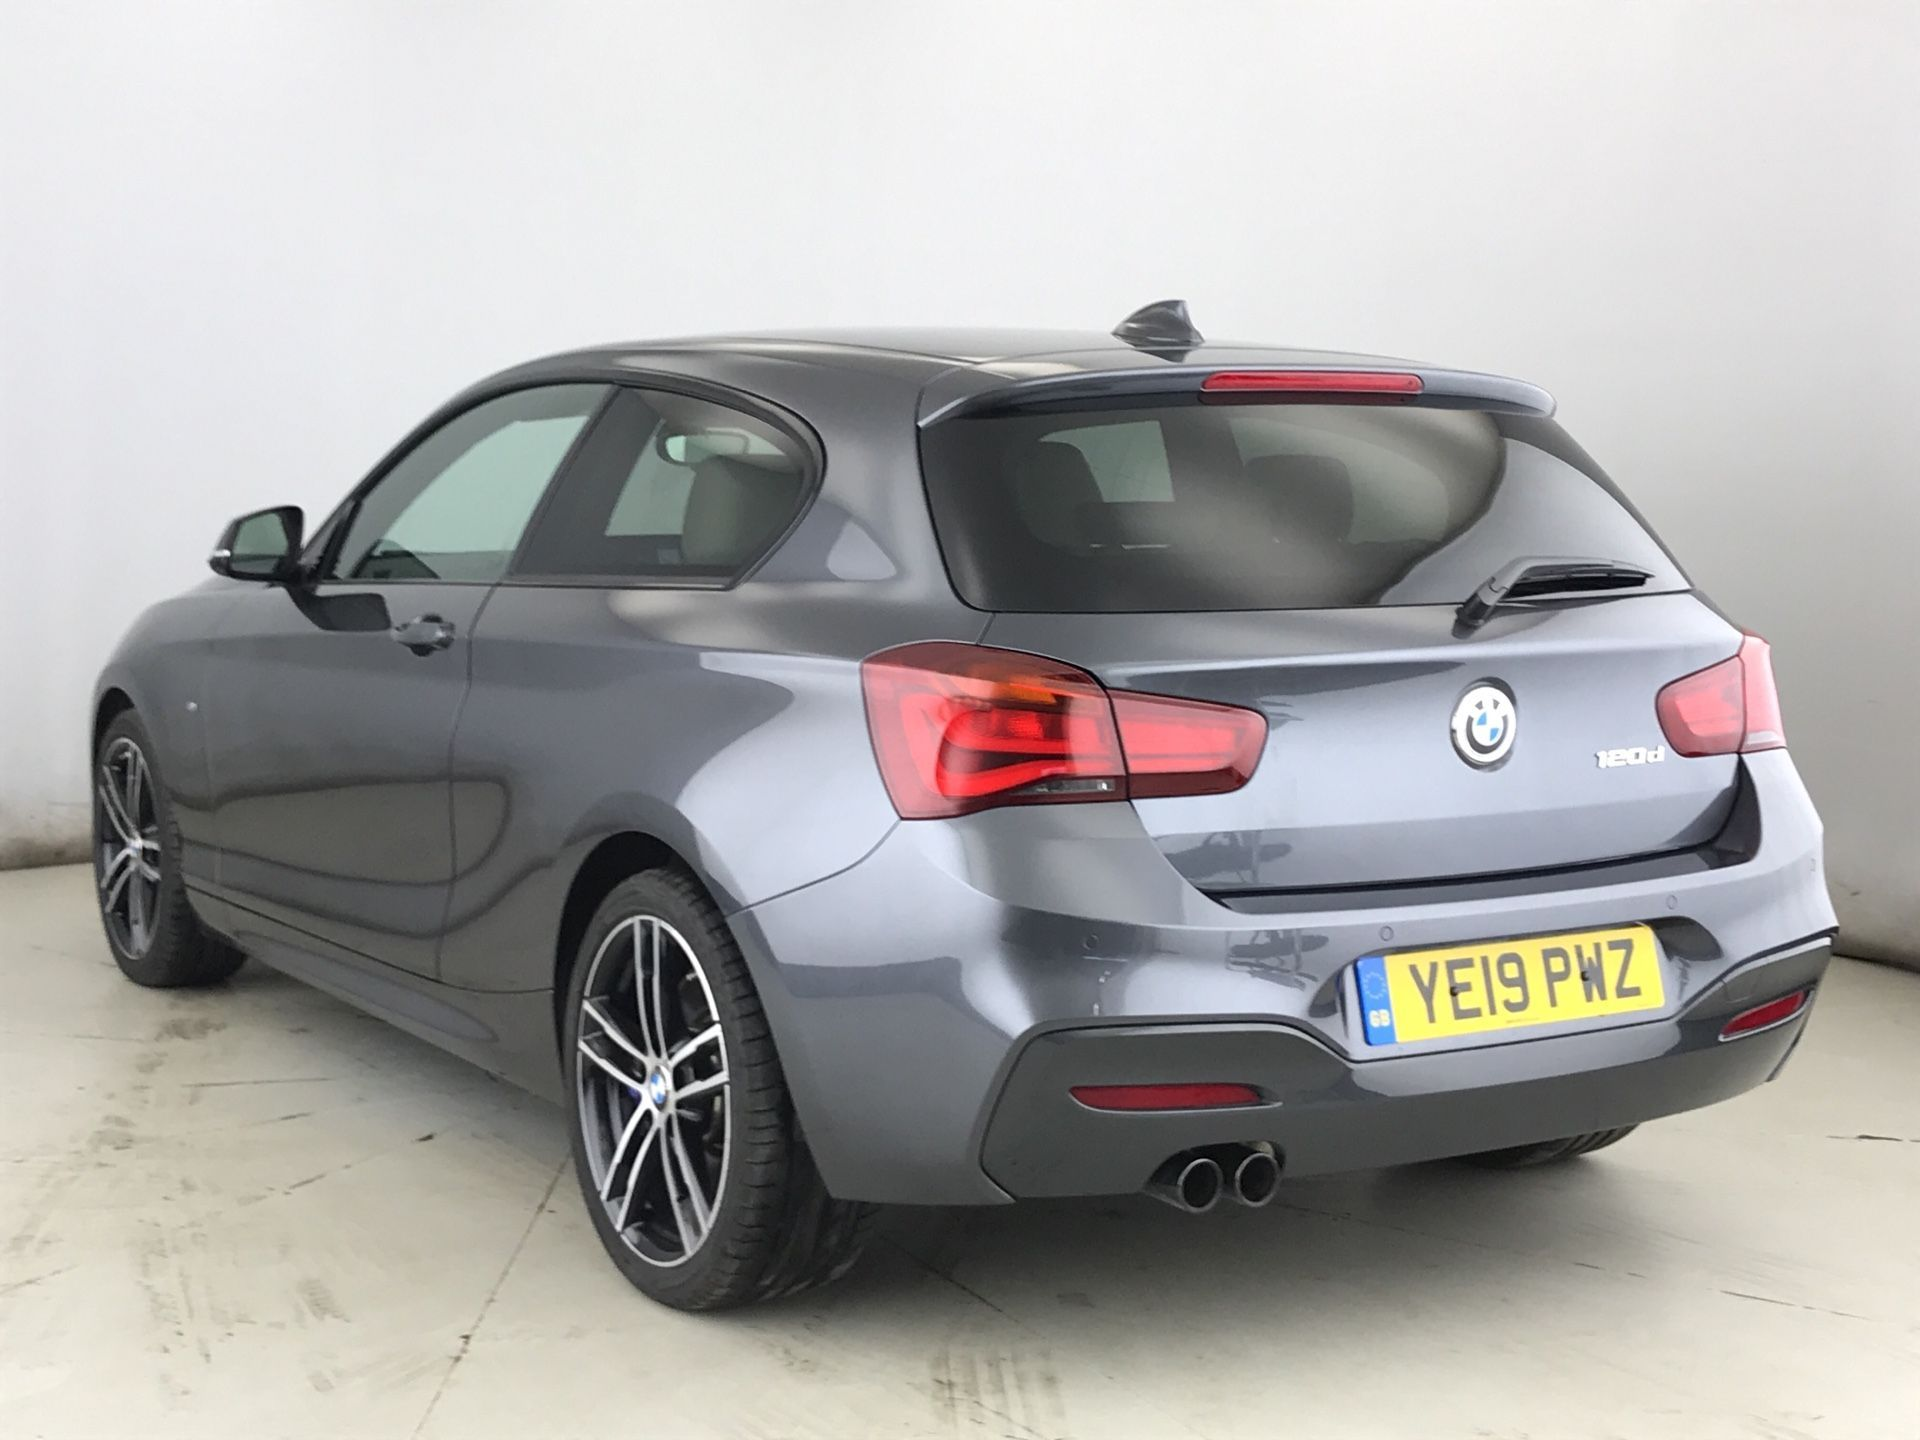 Image 2 - BMW 120d M Sport Shadow Edition 3-door (YE19PWZ)